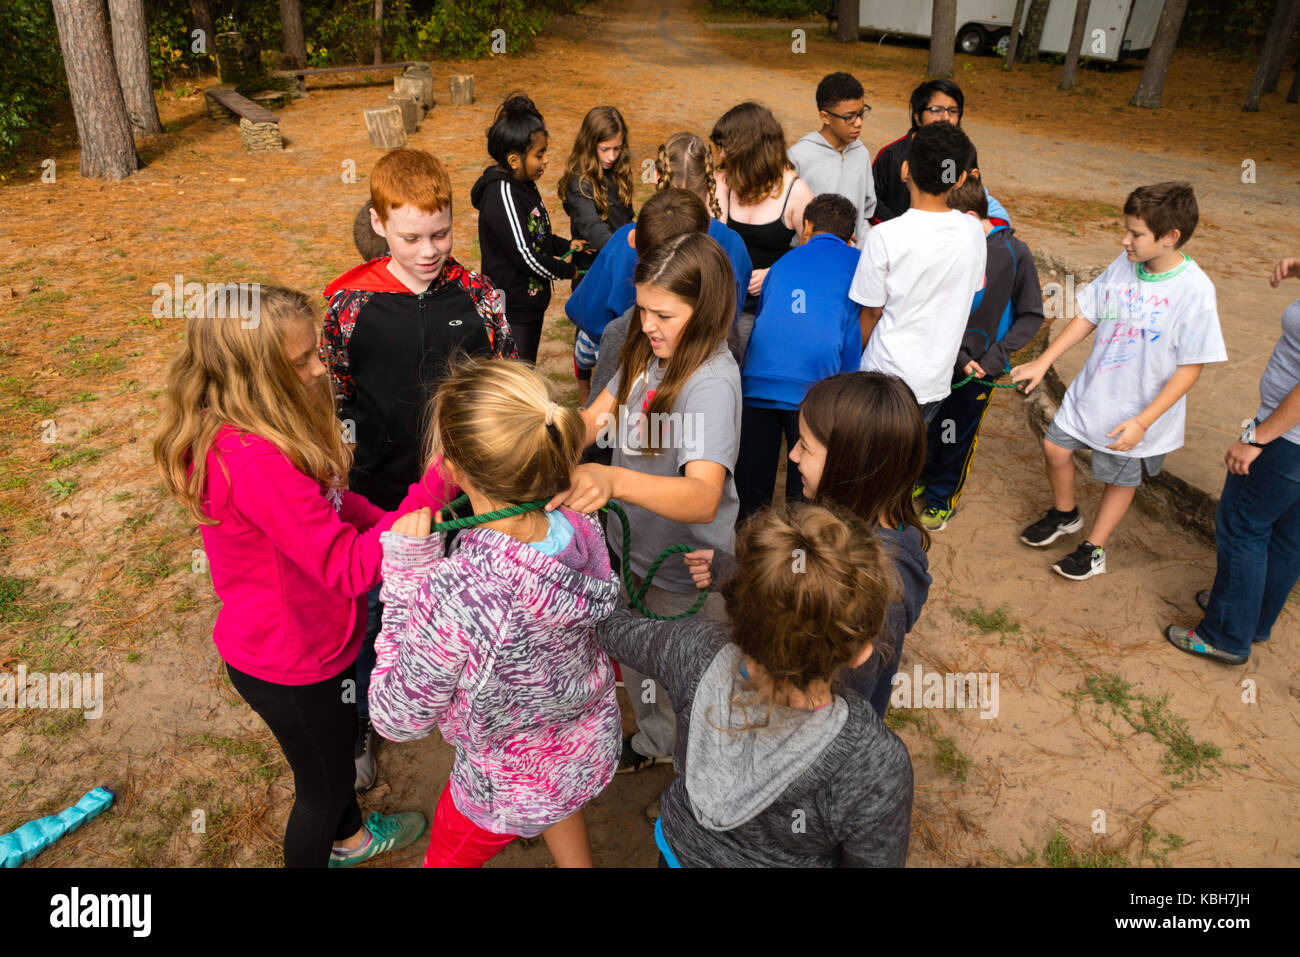 Kids Use A Rope To Learn Team Building Skills And Other